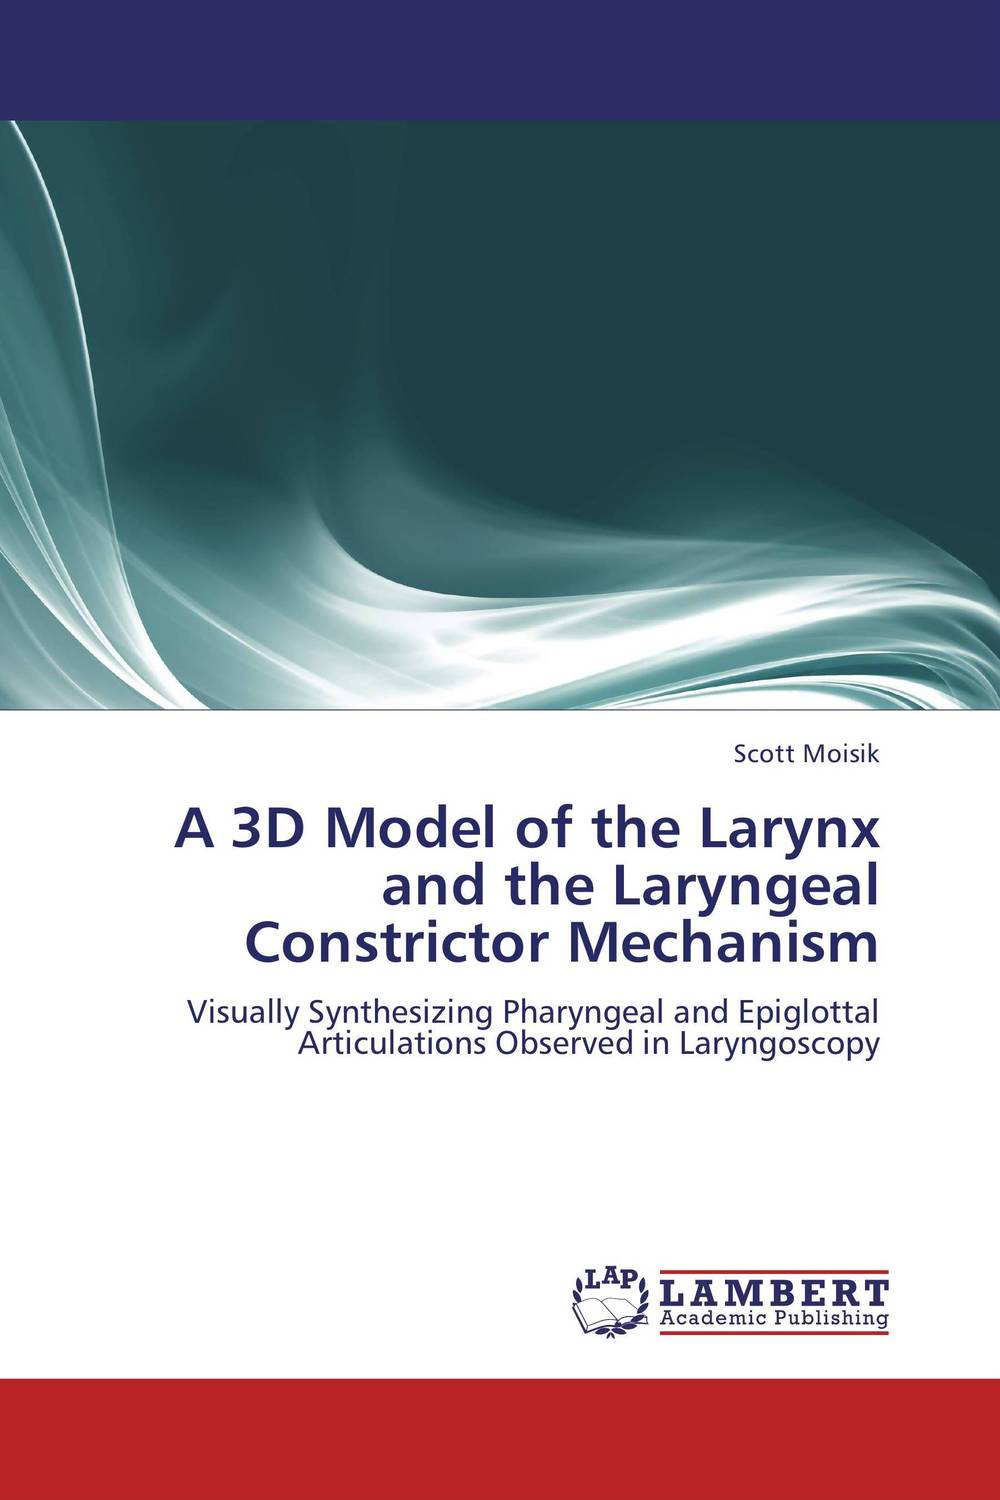 A 3D Model of the Larynx and the Laryngeal Constrictor Mechanism anatomy of a disappearance